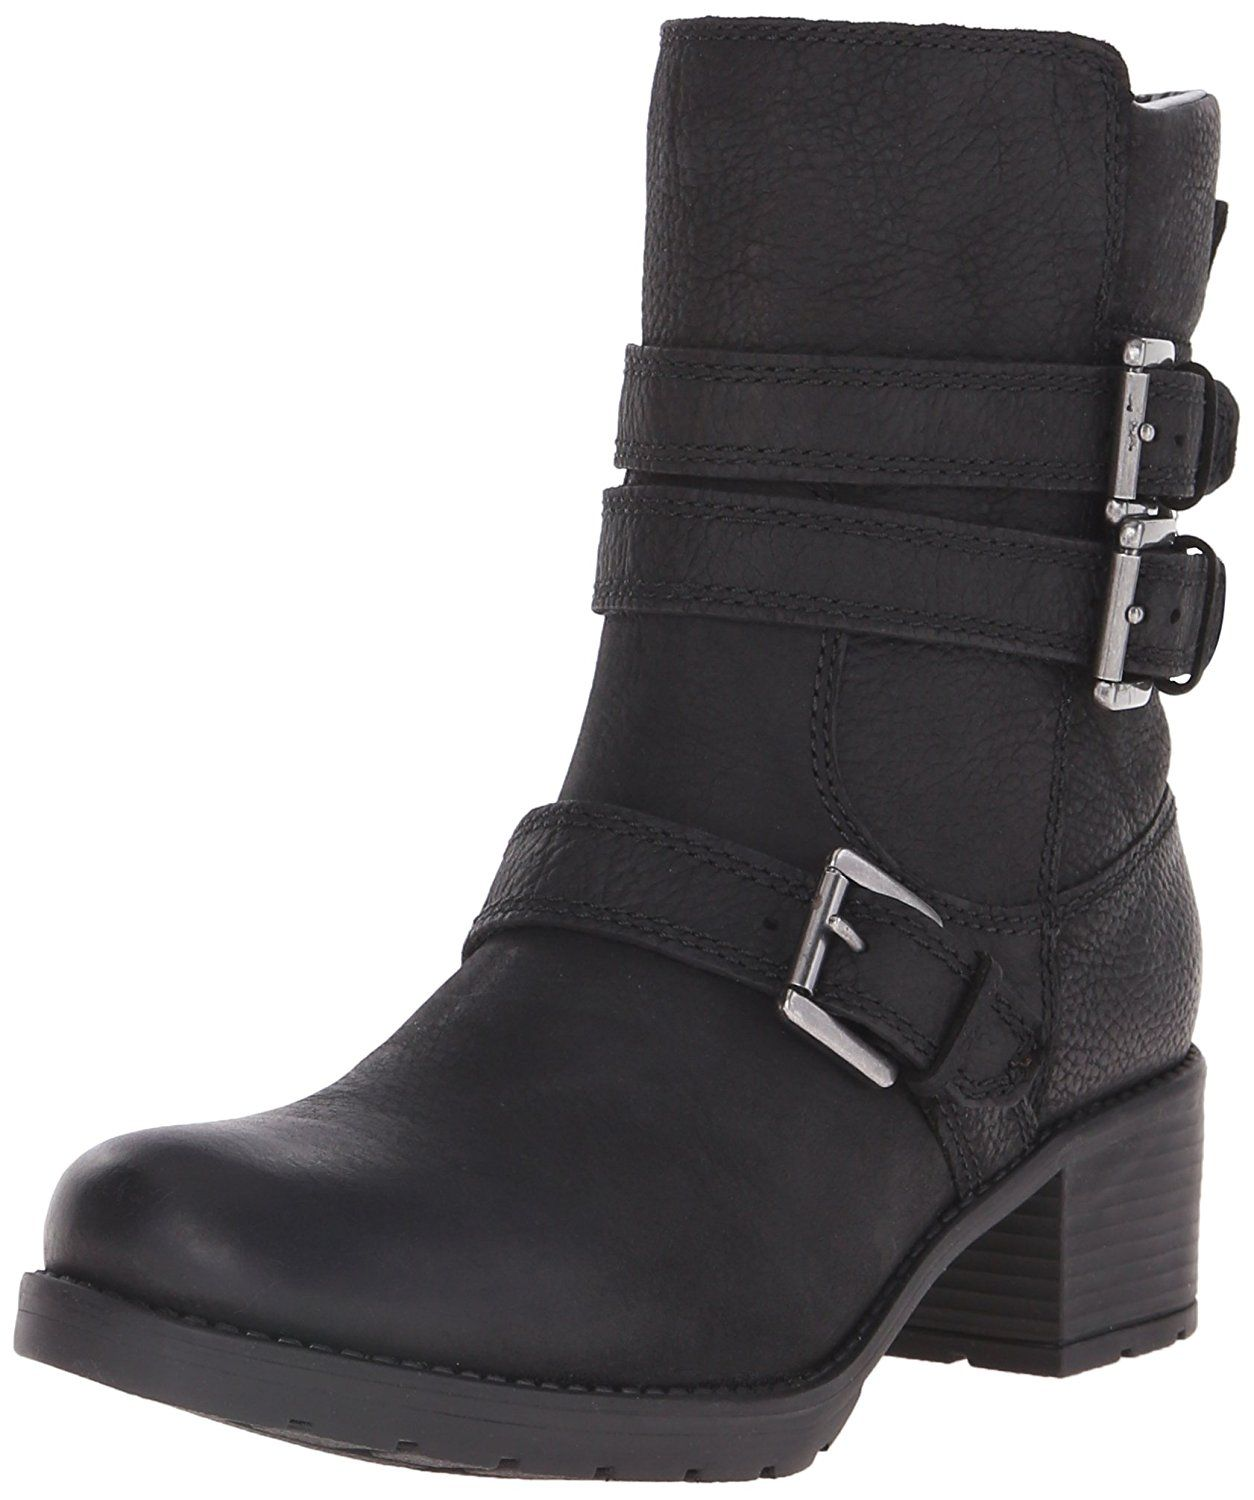 Rockport Womens City Casuals Rola Buckle Bootie Black Tumble WL Boot 65 W C  *** Find out more about the great product at the image link.